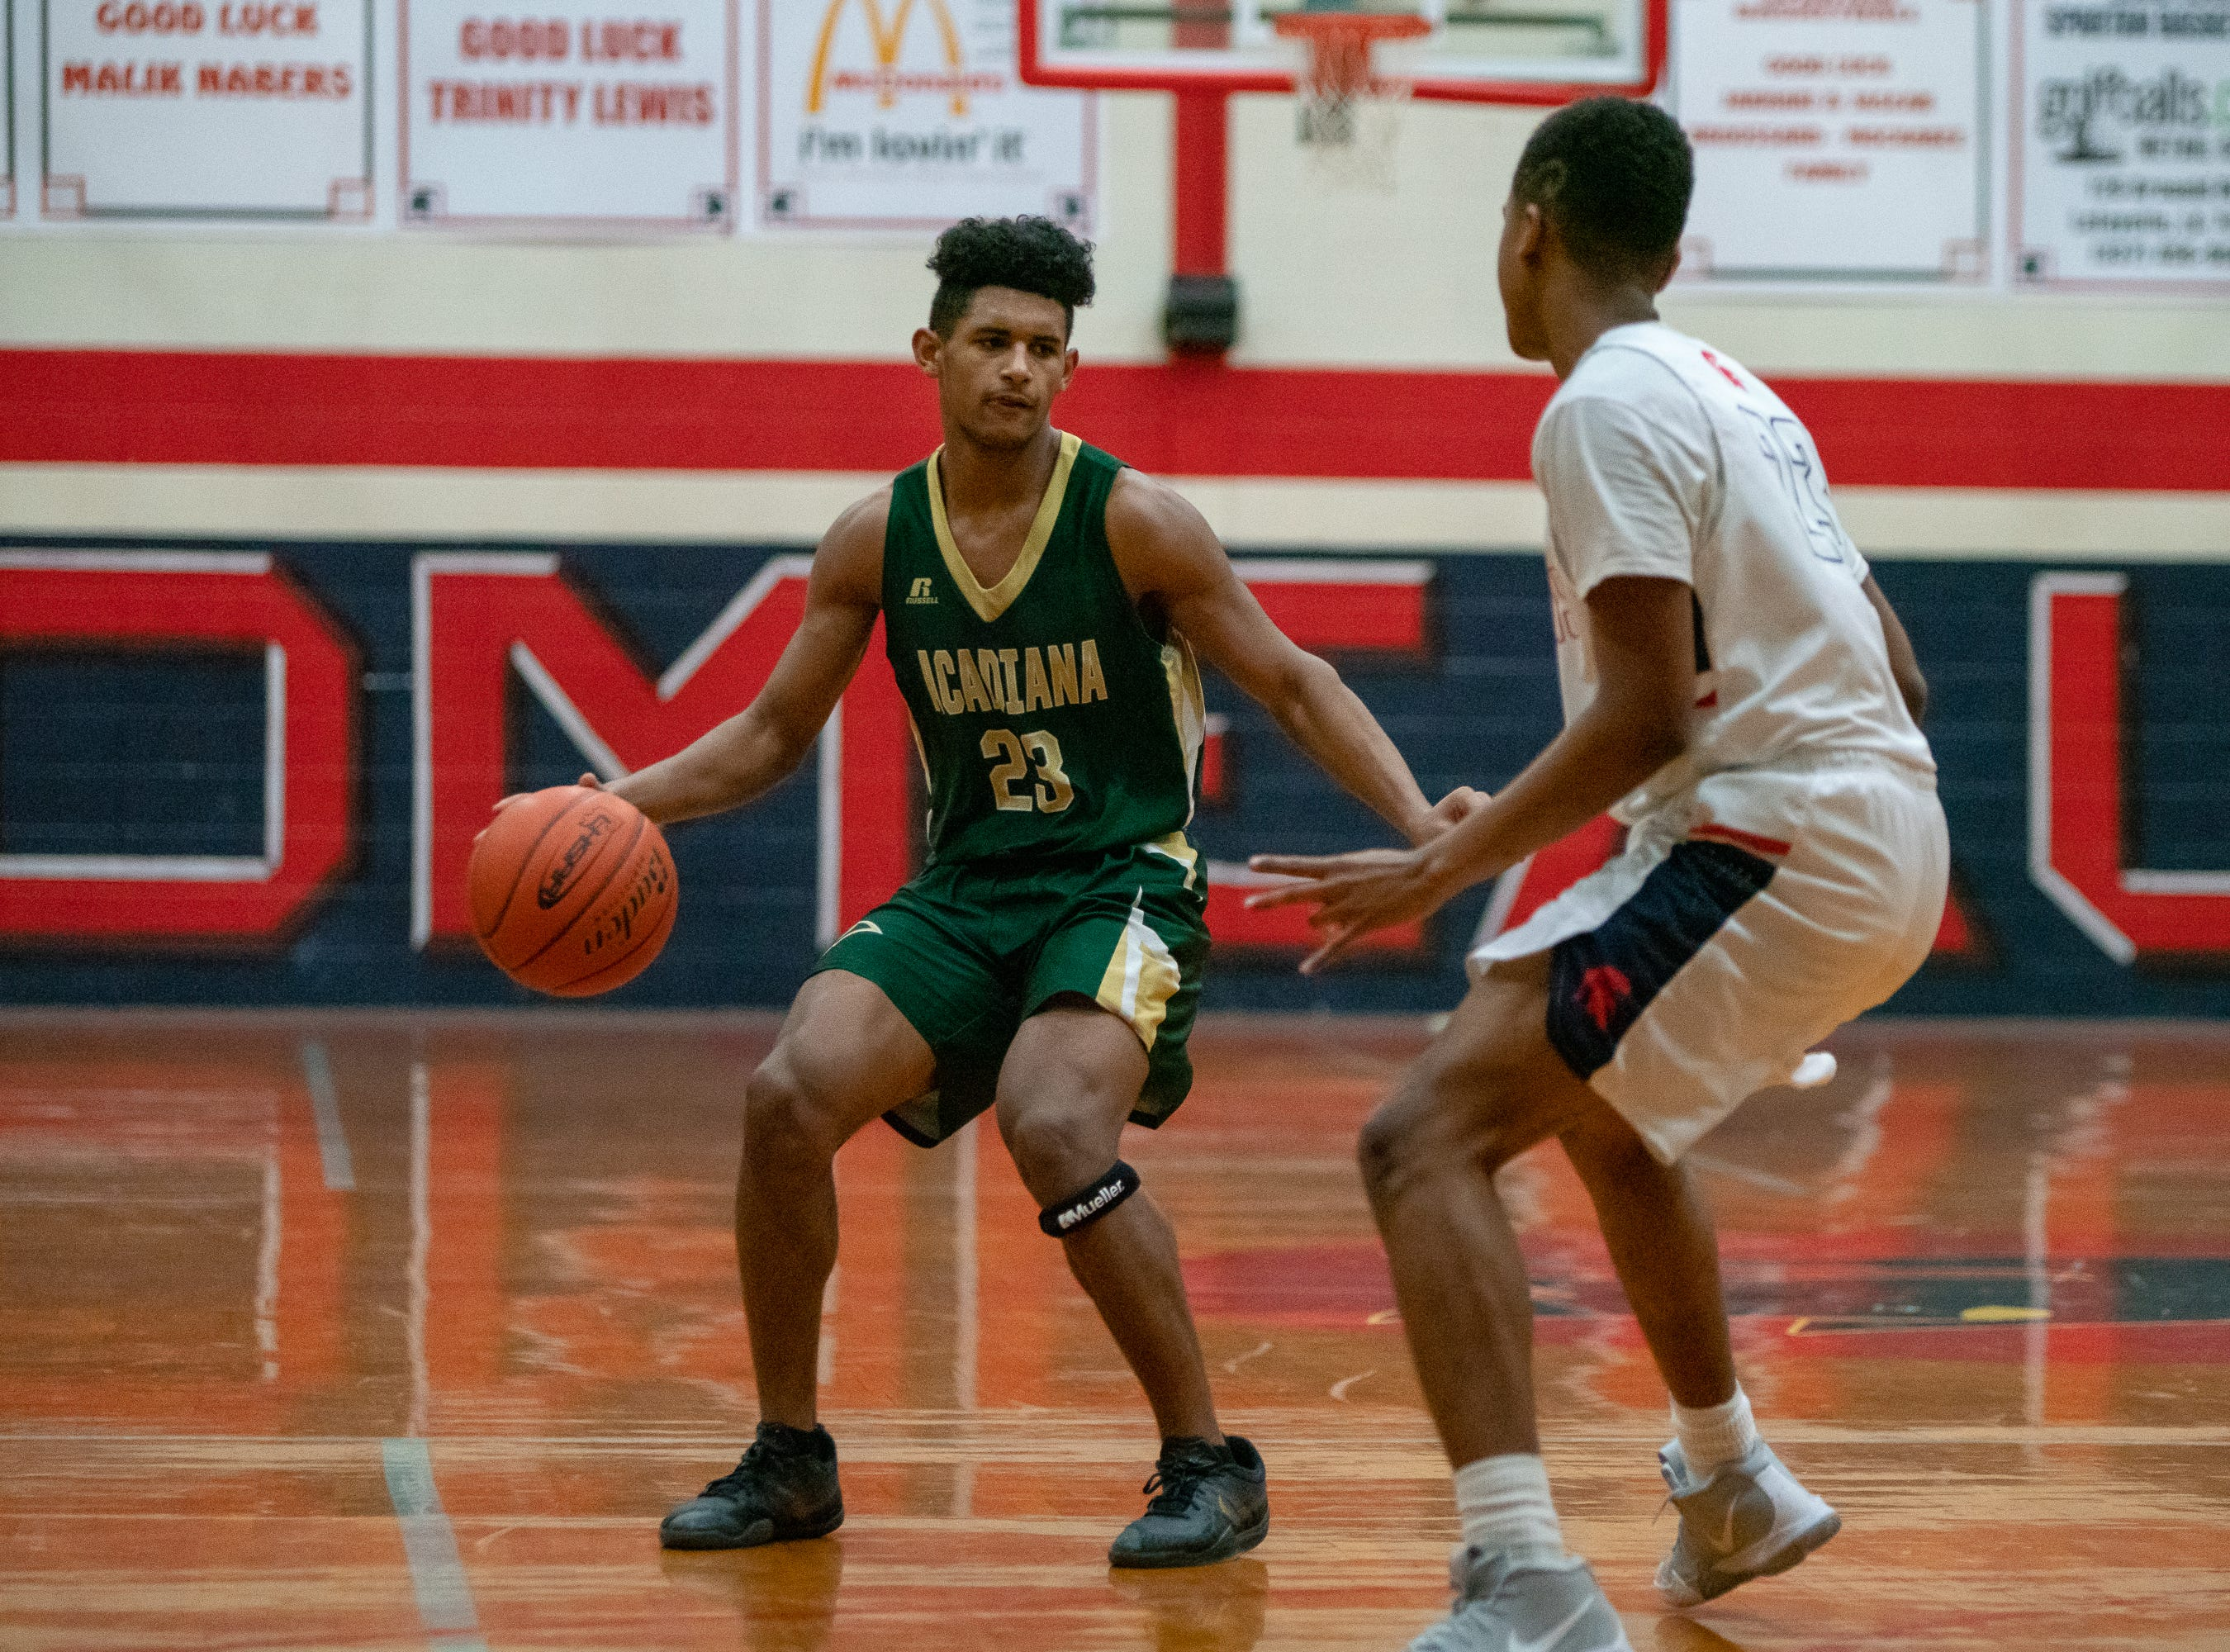 Acadiana High's Keontae Williams (23) handles the ball during the play as the Comeaux High Spartans take on the Acadiana High Wreckin' Rams at Comeaux High School on Jan. 25, 2019.